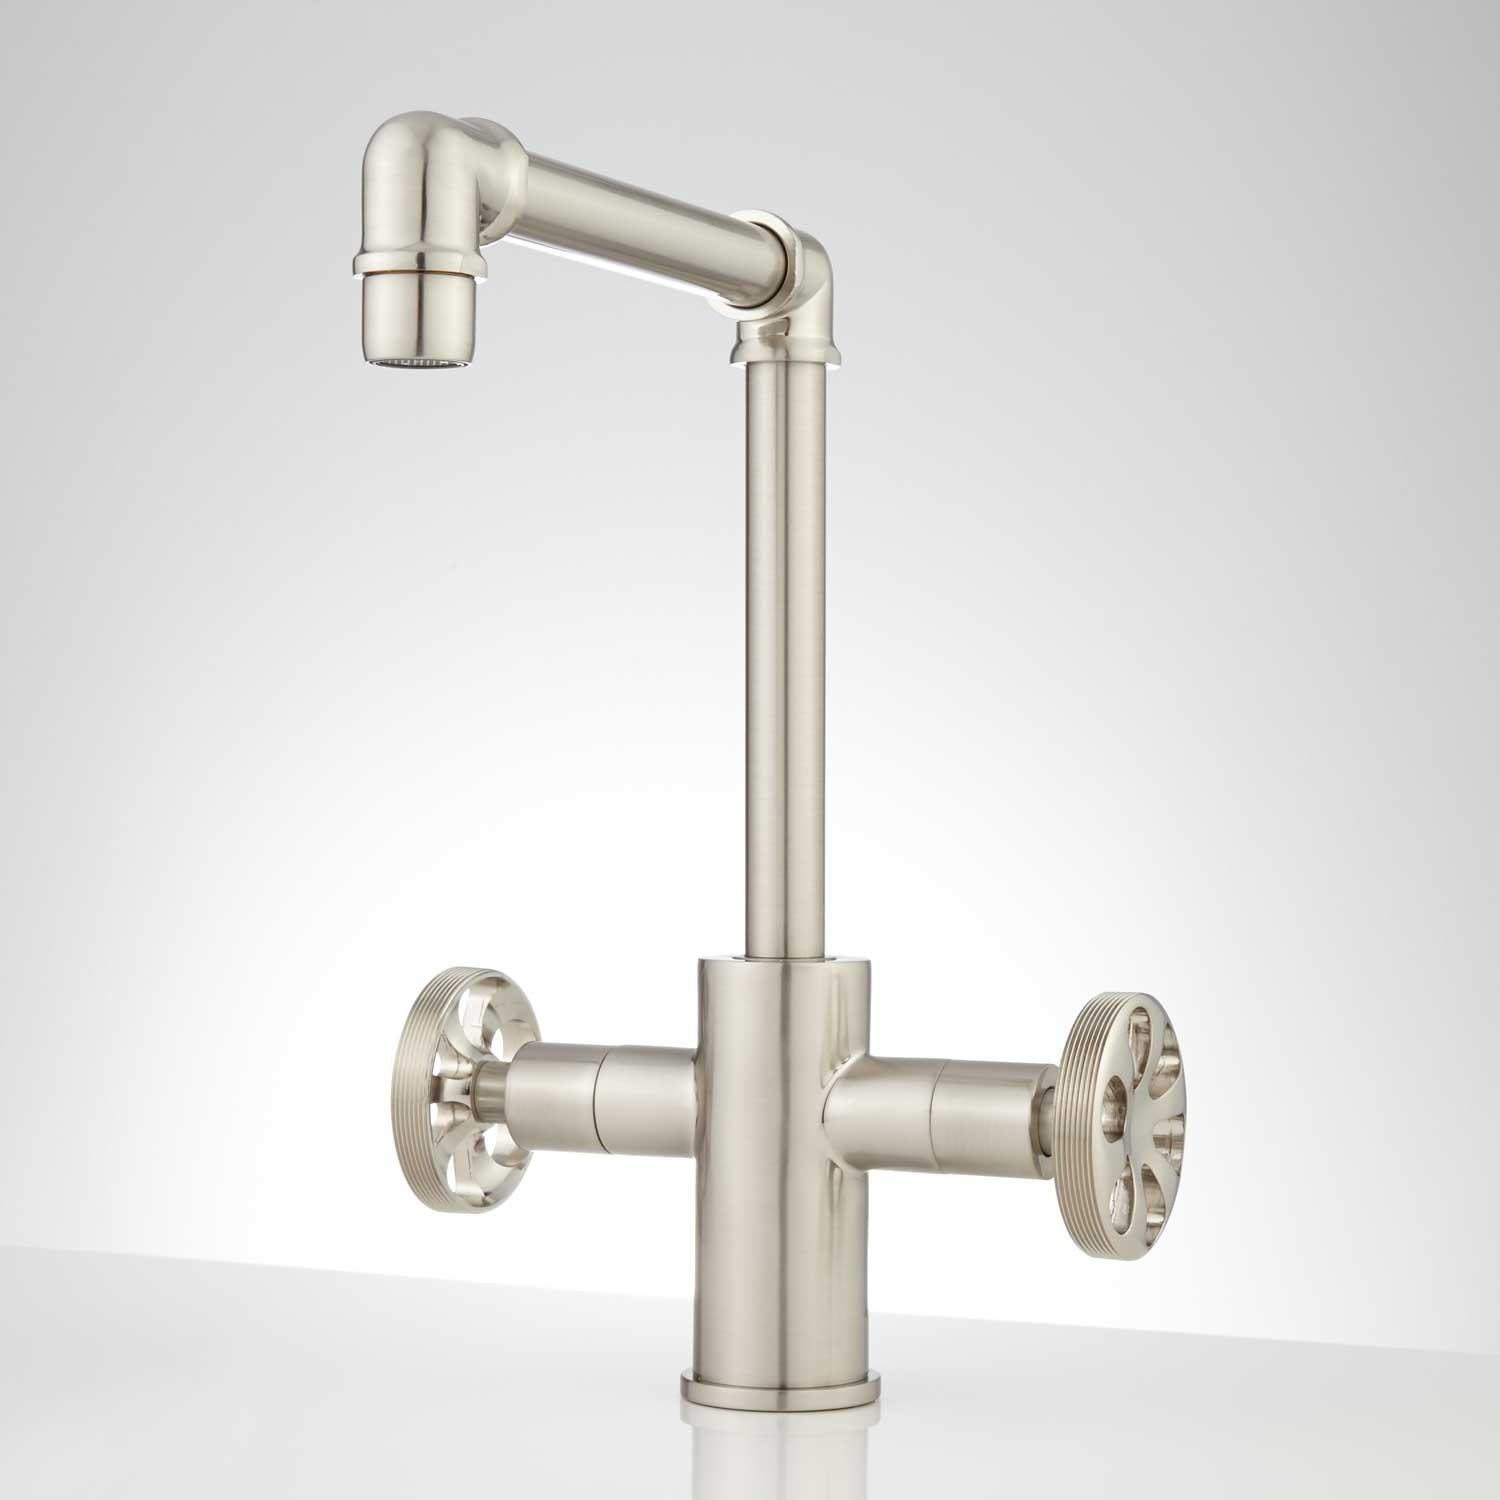 Solid Brass Bath Faucets